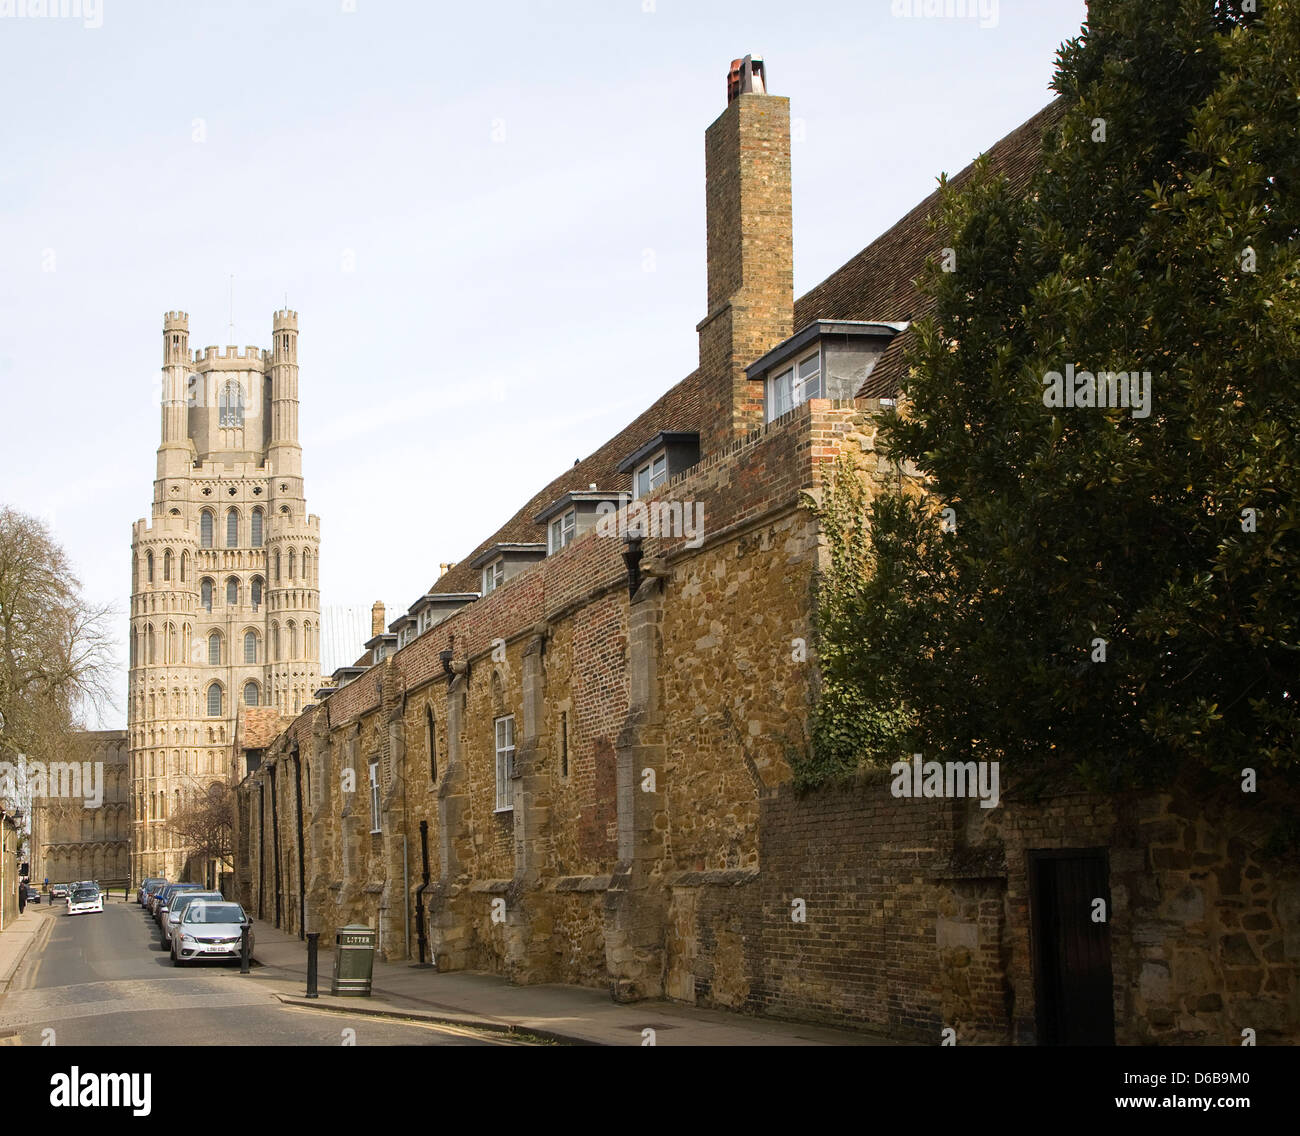 The King's School and cathedral at Ely, Cambridgeshire, England - Stock Image